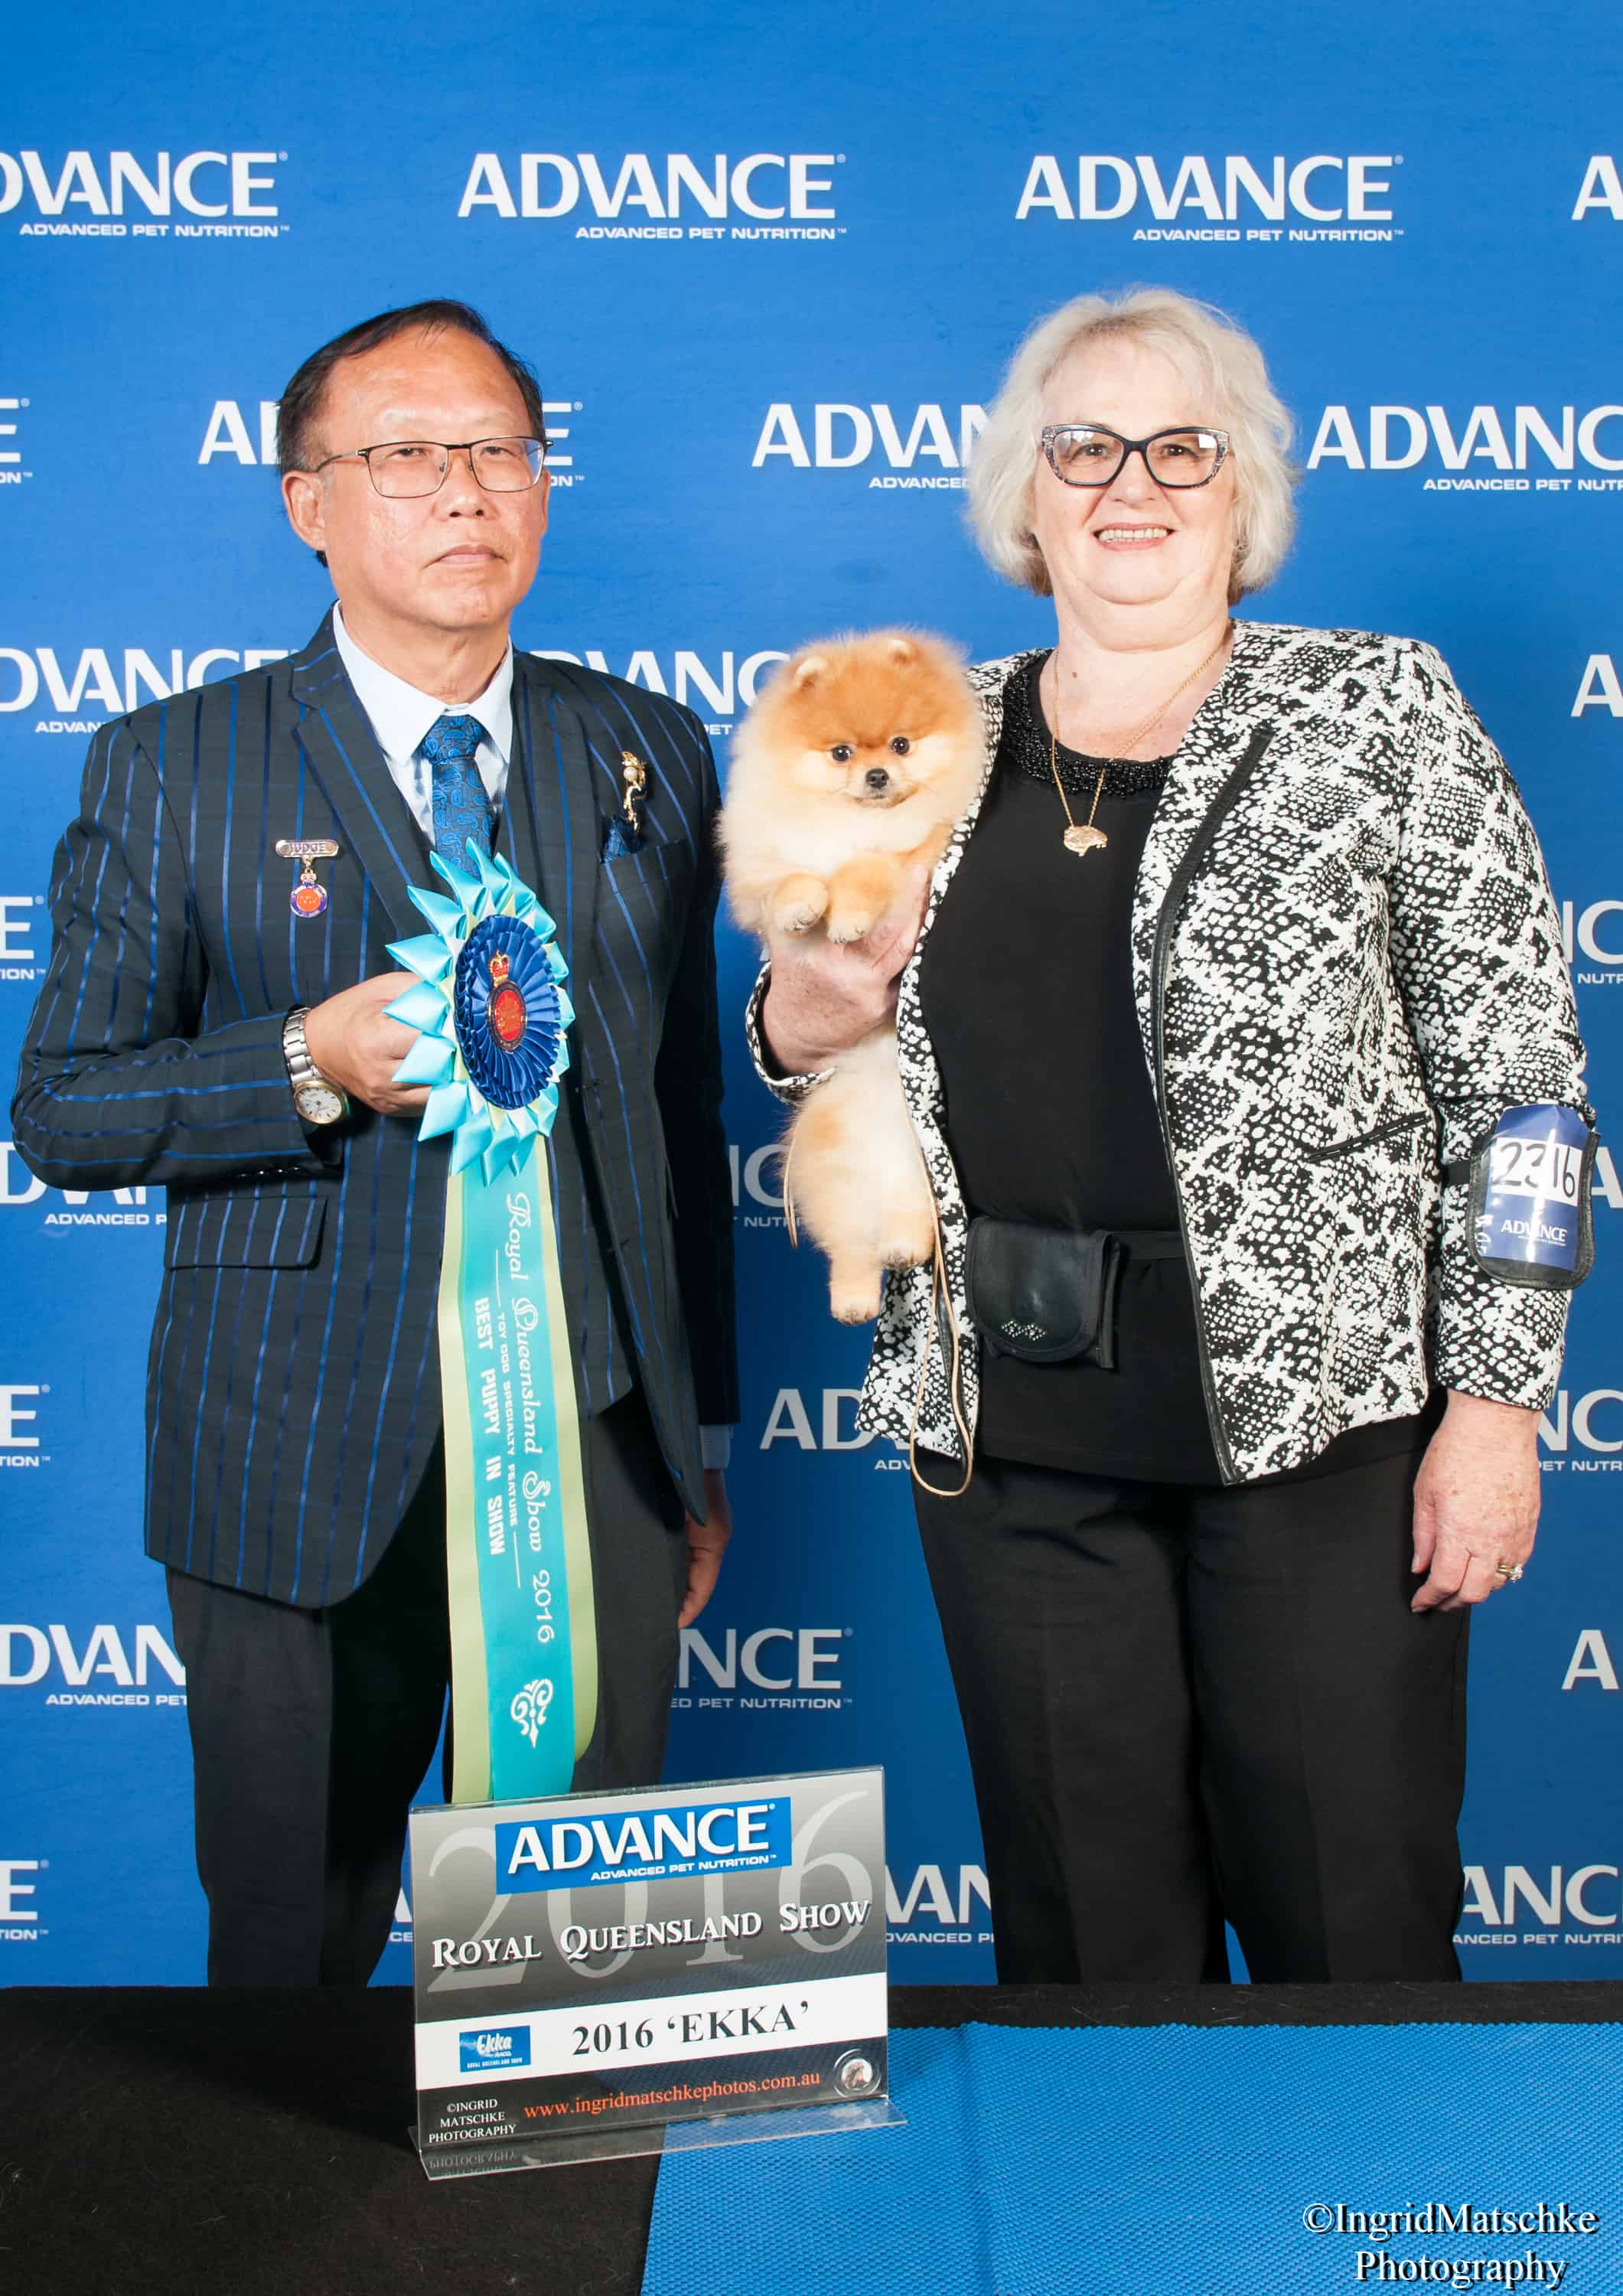 Dochlaggie Deagol The Hobbit winning BEST PUPPY IN SHOW at the EKKA under breed specialist judge Mr Weng Woh Chan